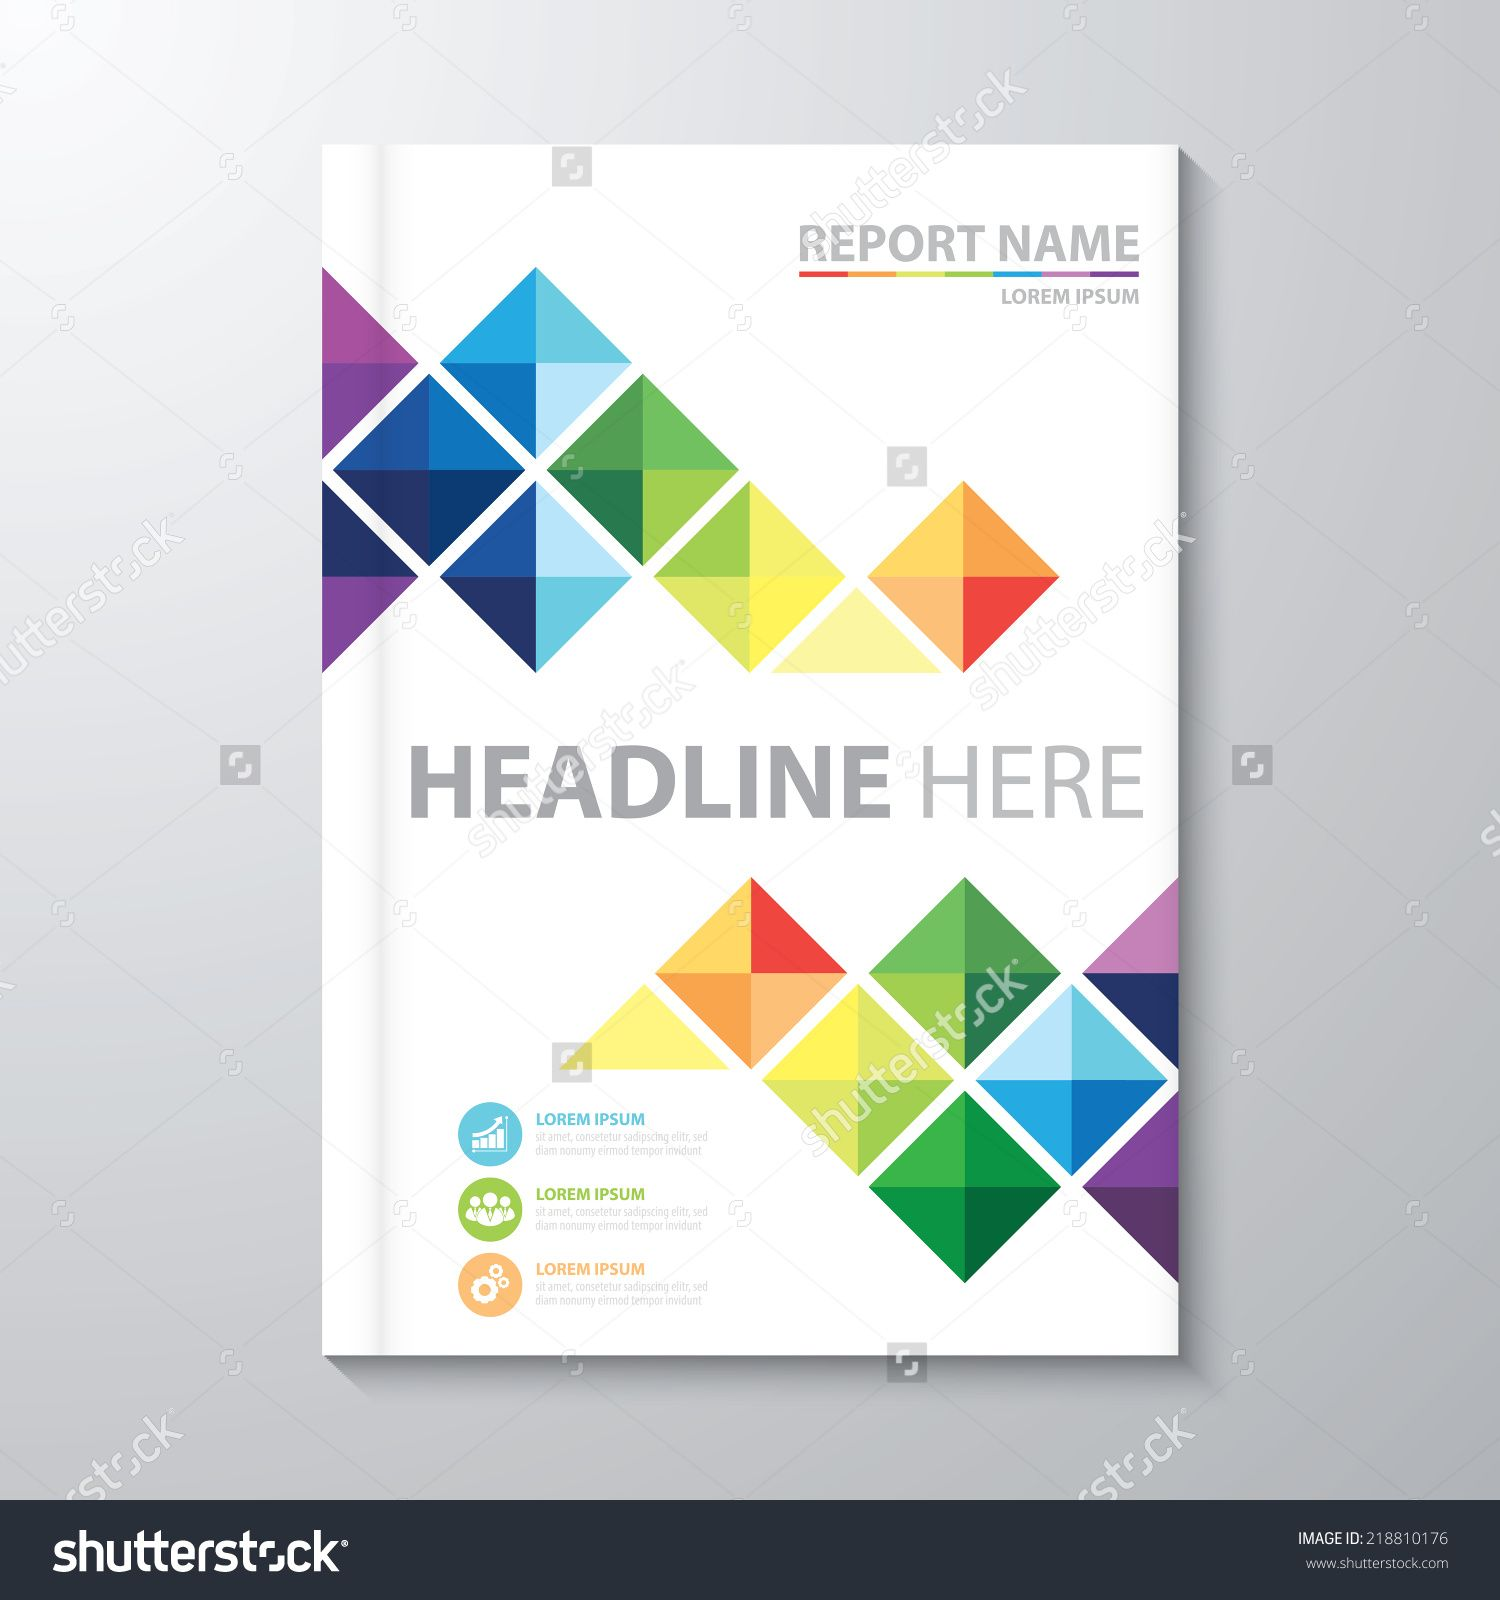 Corporate Book Cover Design Vector : Abstract colorful triangle background cover design